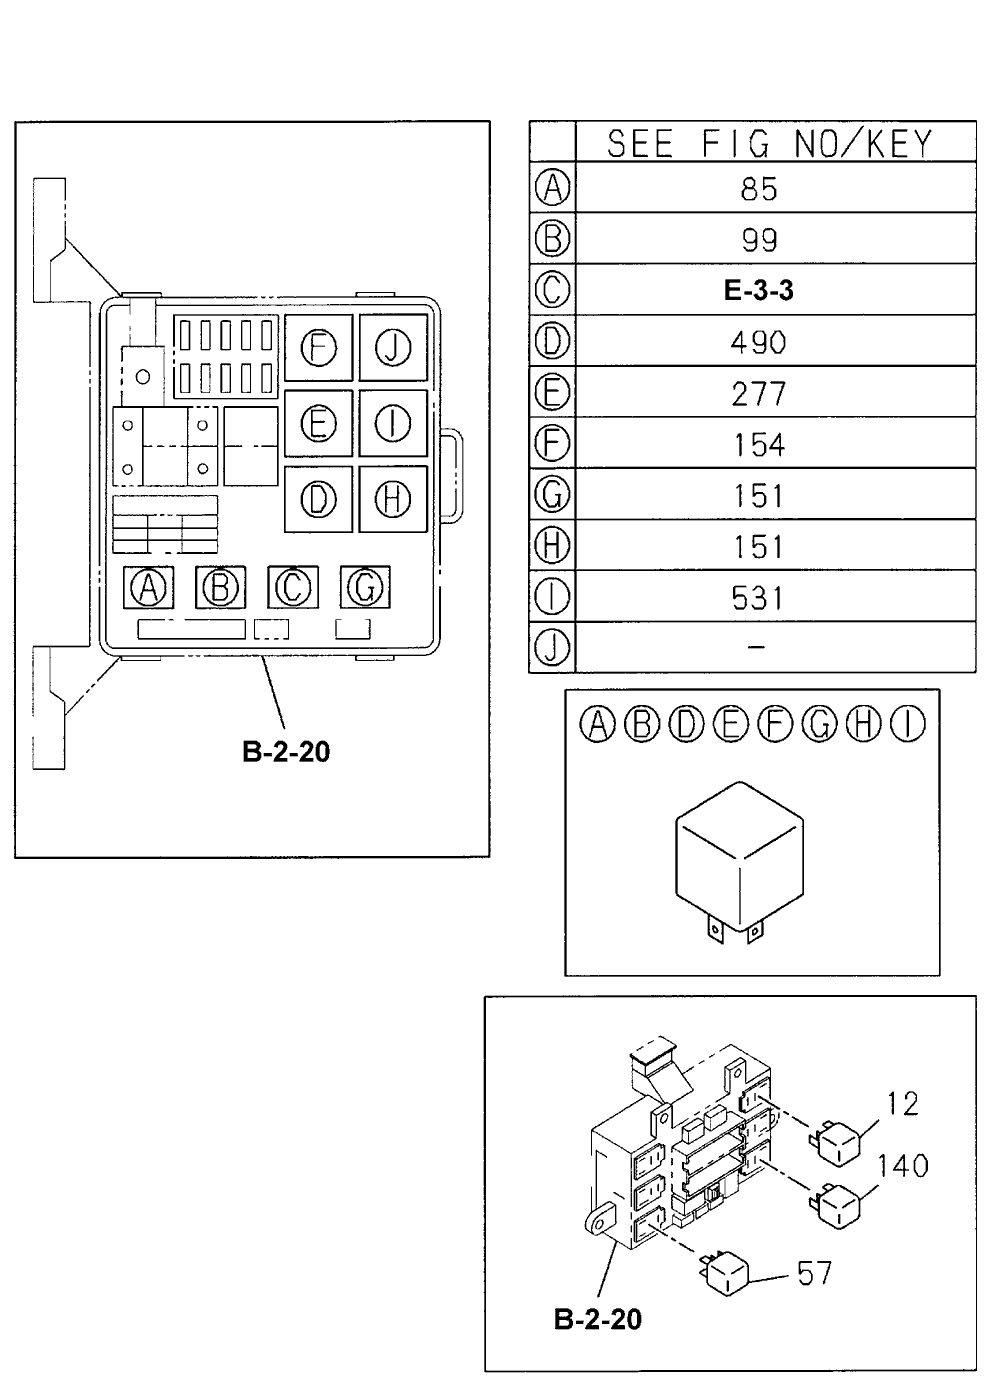 CY_2842] Honda Passport Fuse Box Diagram Download DiagramGritea Inst Cali Wigeg Mohammedshrine Librar Wiring 101